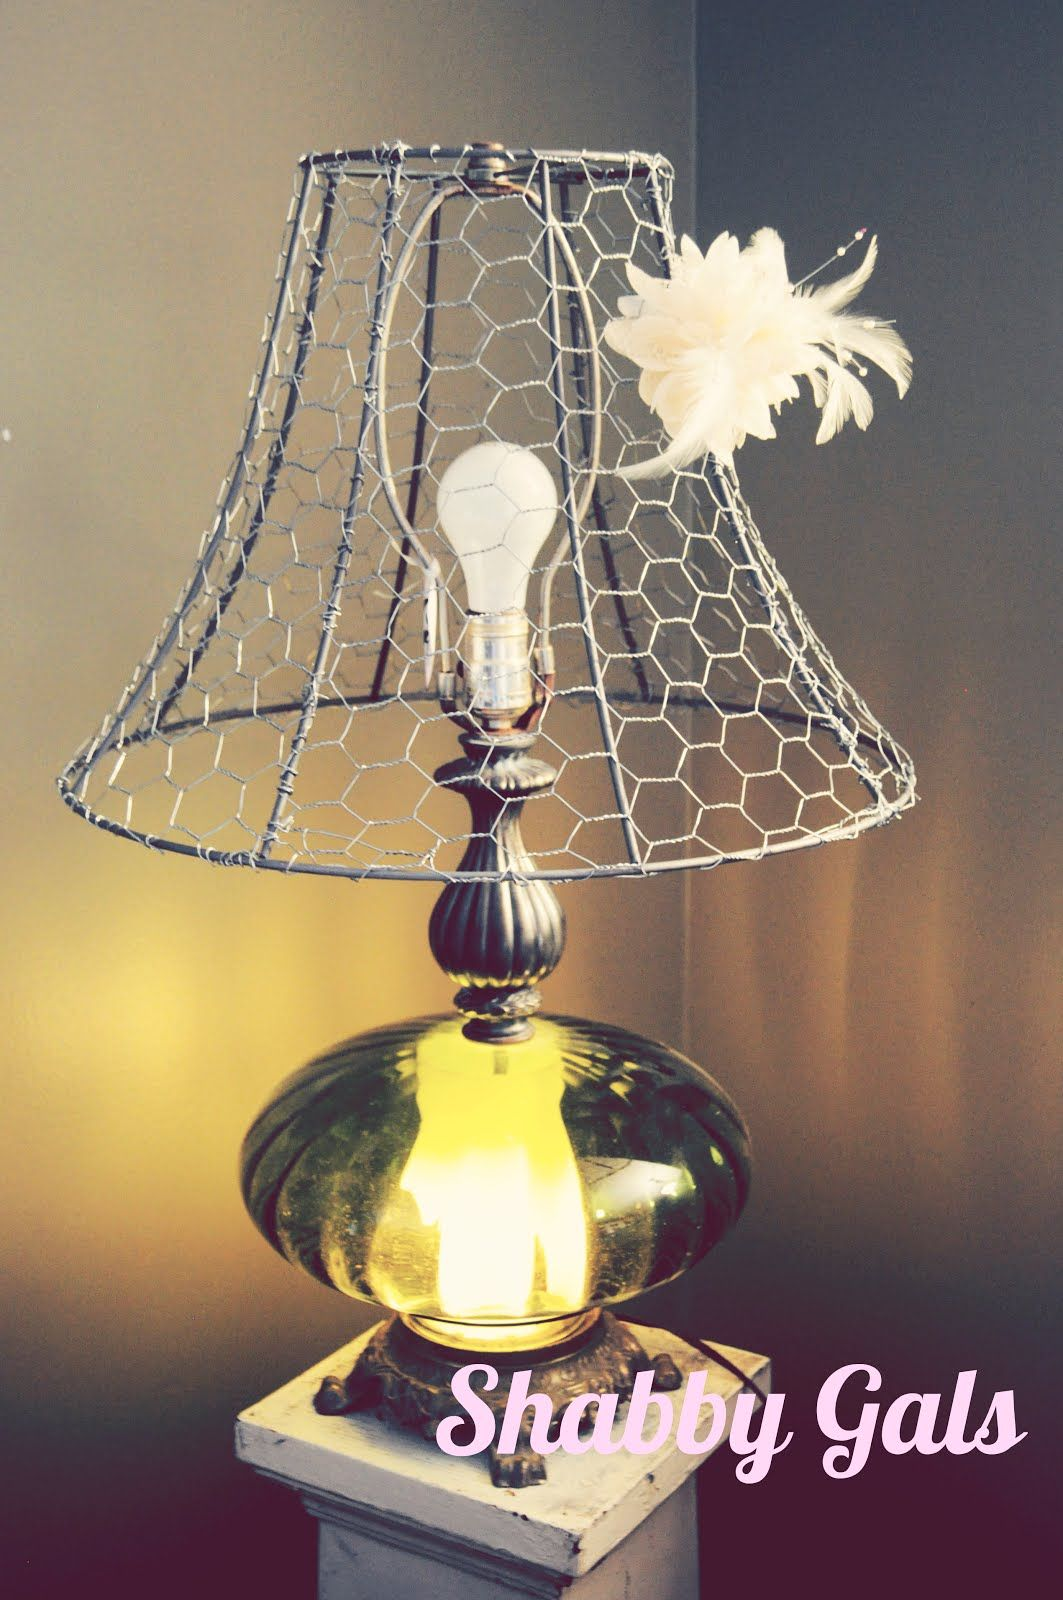 Shabby Gals Chicken Wire Lampshade Chicken Wire Crafts Wire Lampshade Diy Lamp Shade